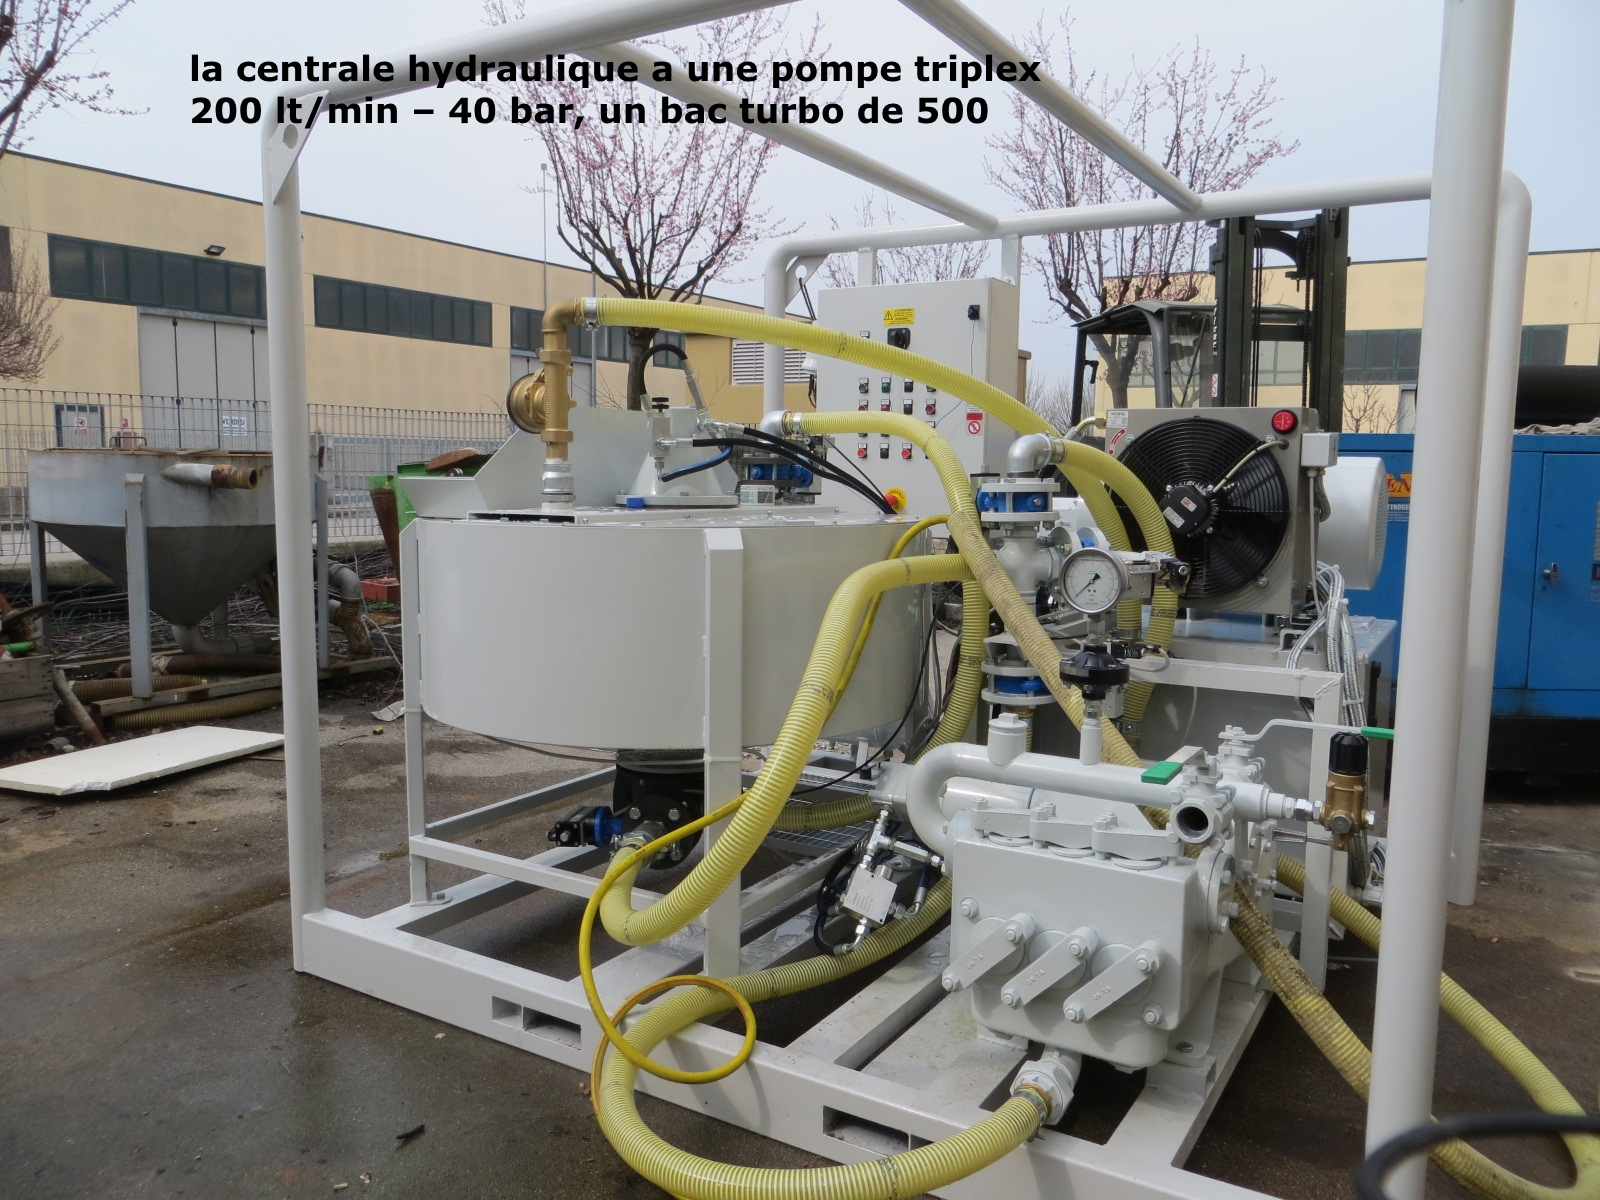 Centrale D'injection de coulis béton 200 Lt/min à 40 bar - Bac turbo 500 Lt